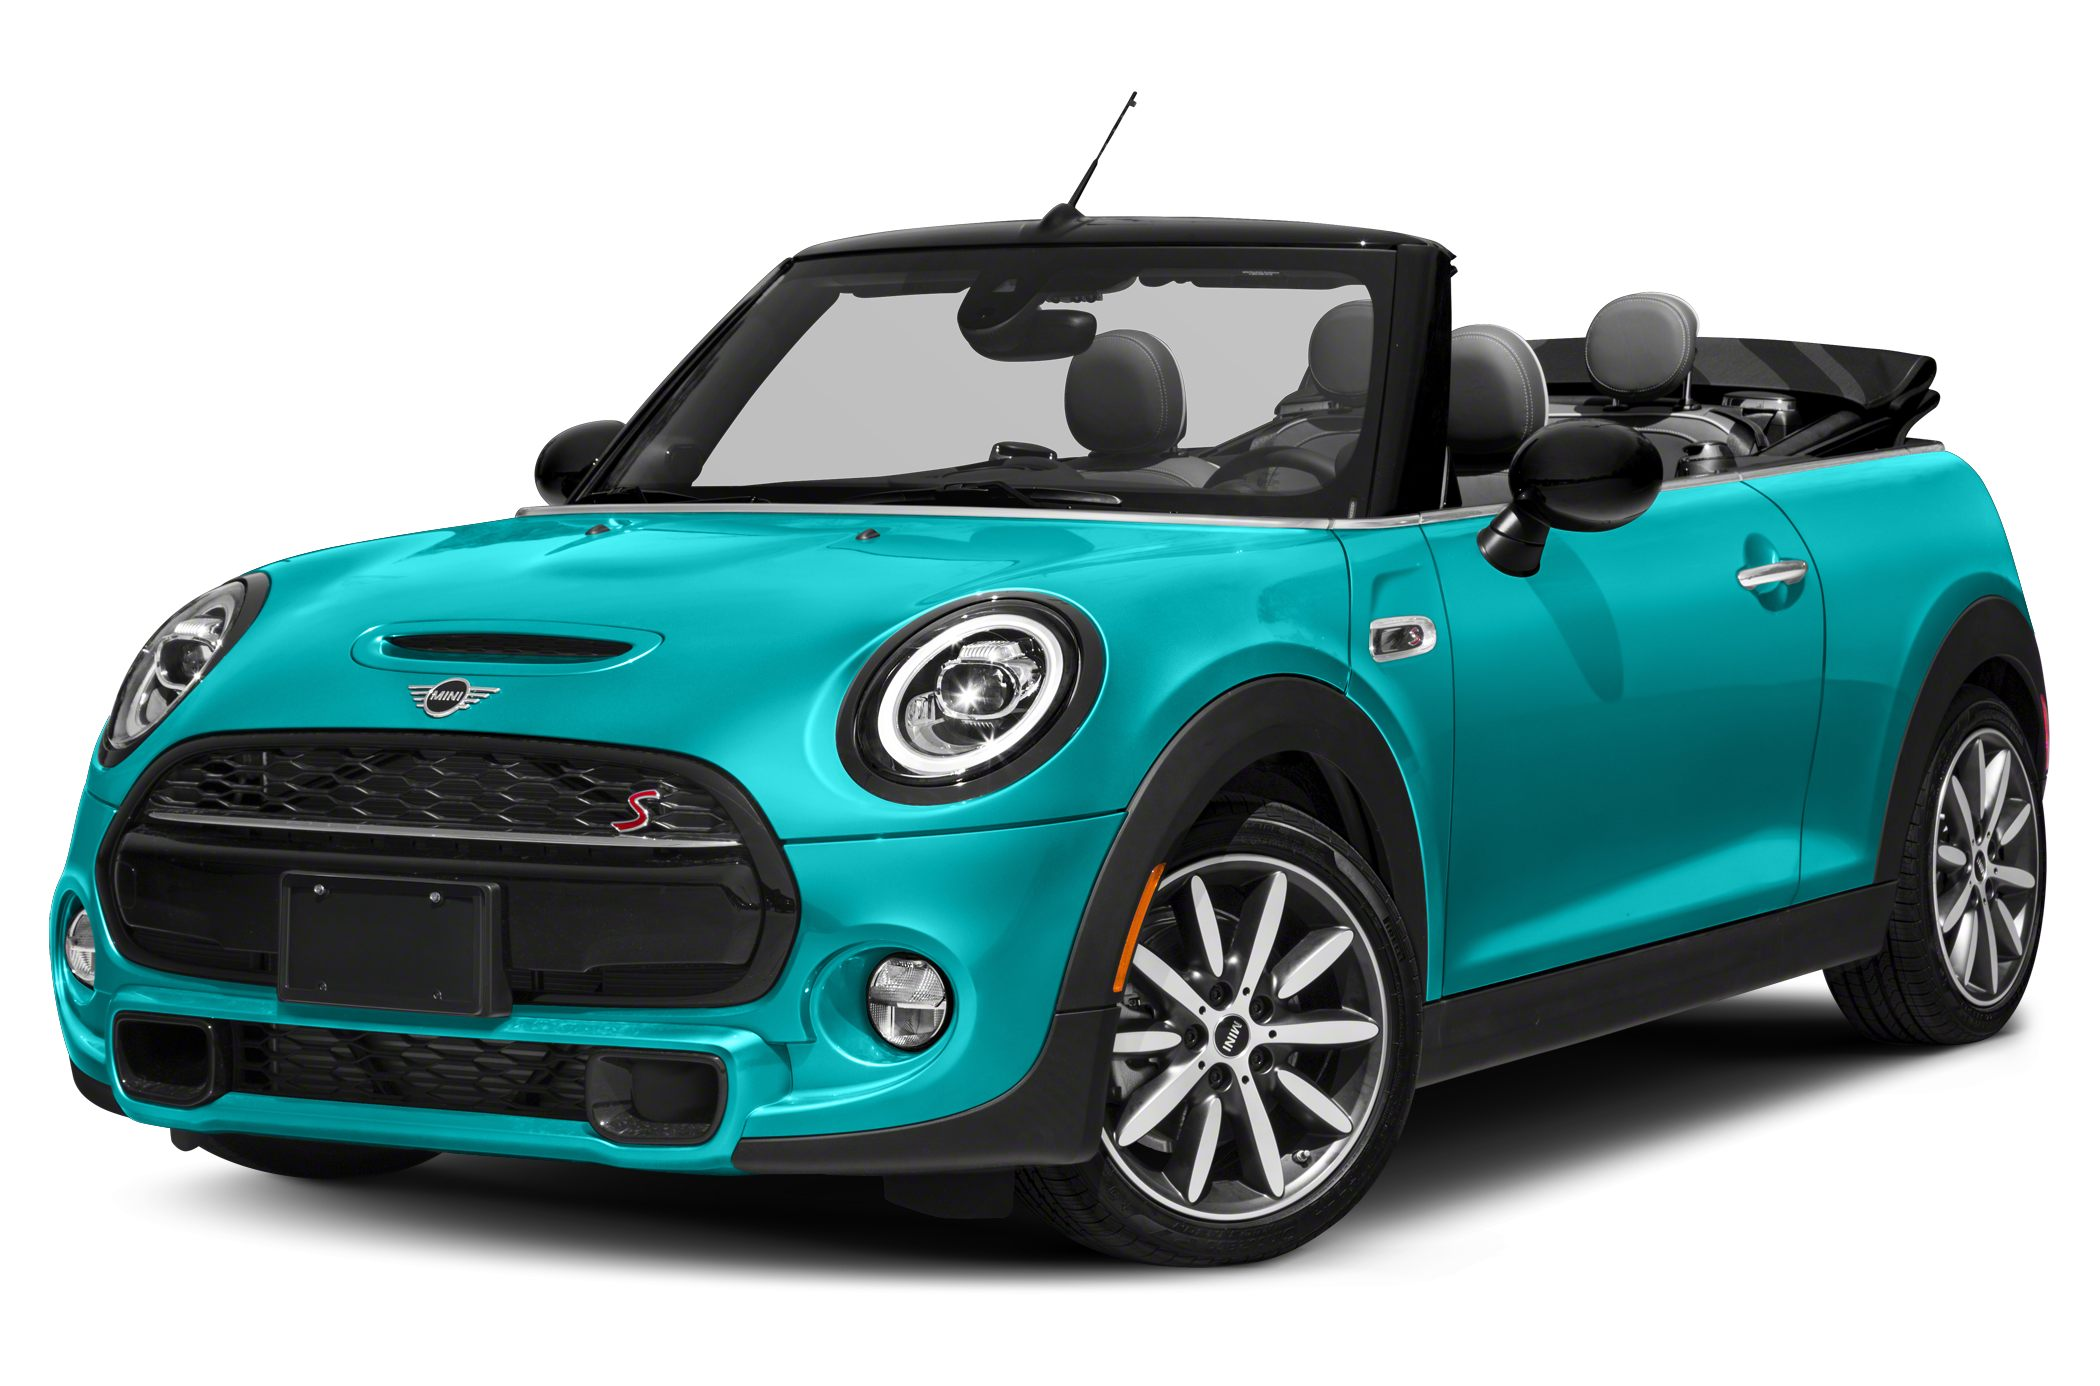 2020 Mini Cooper Convertible S Release Date and Concept